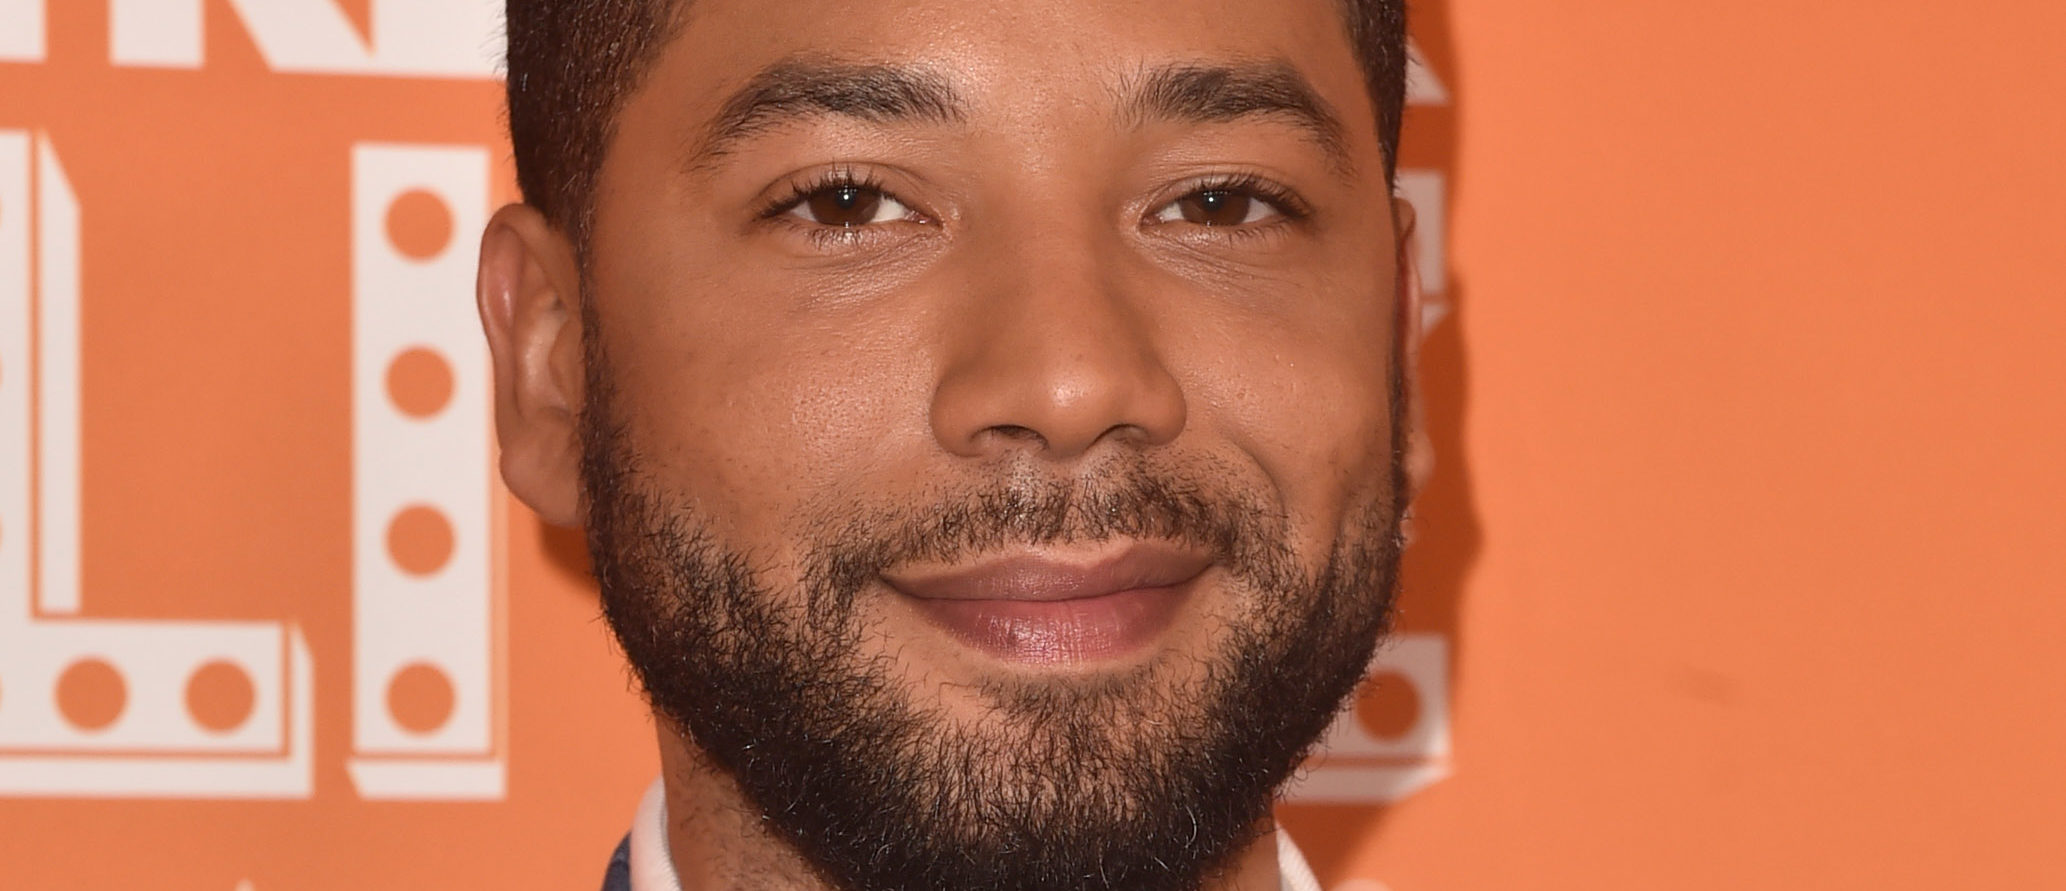 Jussie Smollett attends The Trevor Project's 2018 TrevorLIVE Gala at The Beverly Hilton Hotel on December 02, 2018 in Beverly Hills, California. (Photo by Alberto E. Rodriguez/Getty Images)